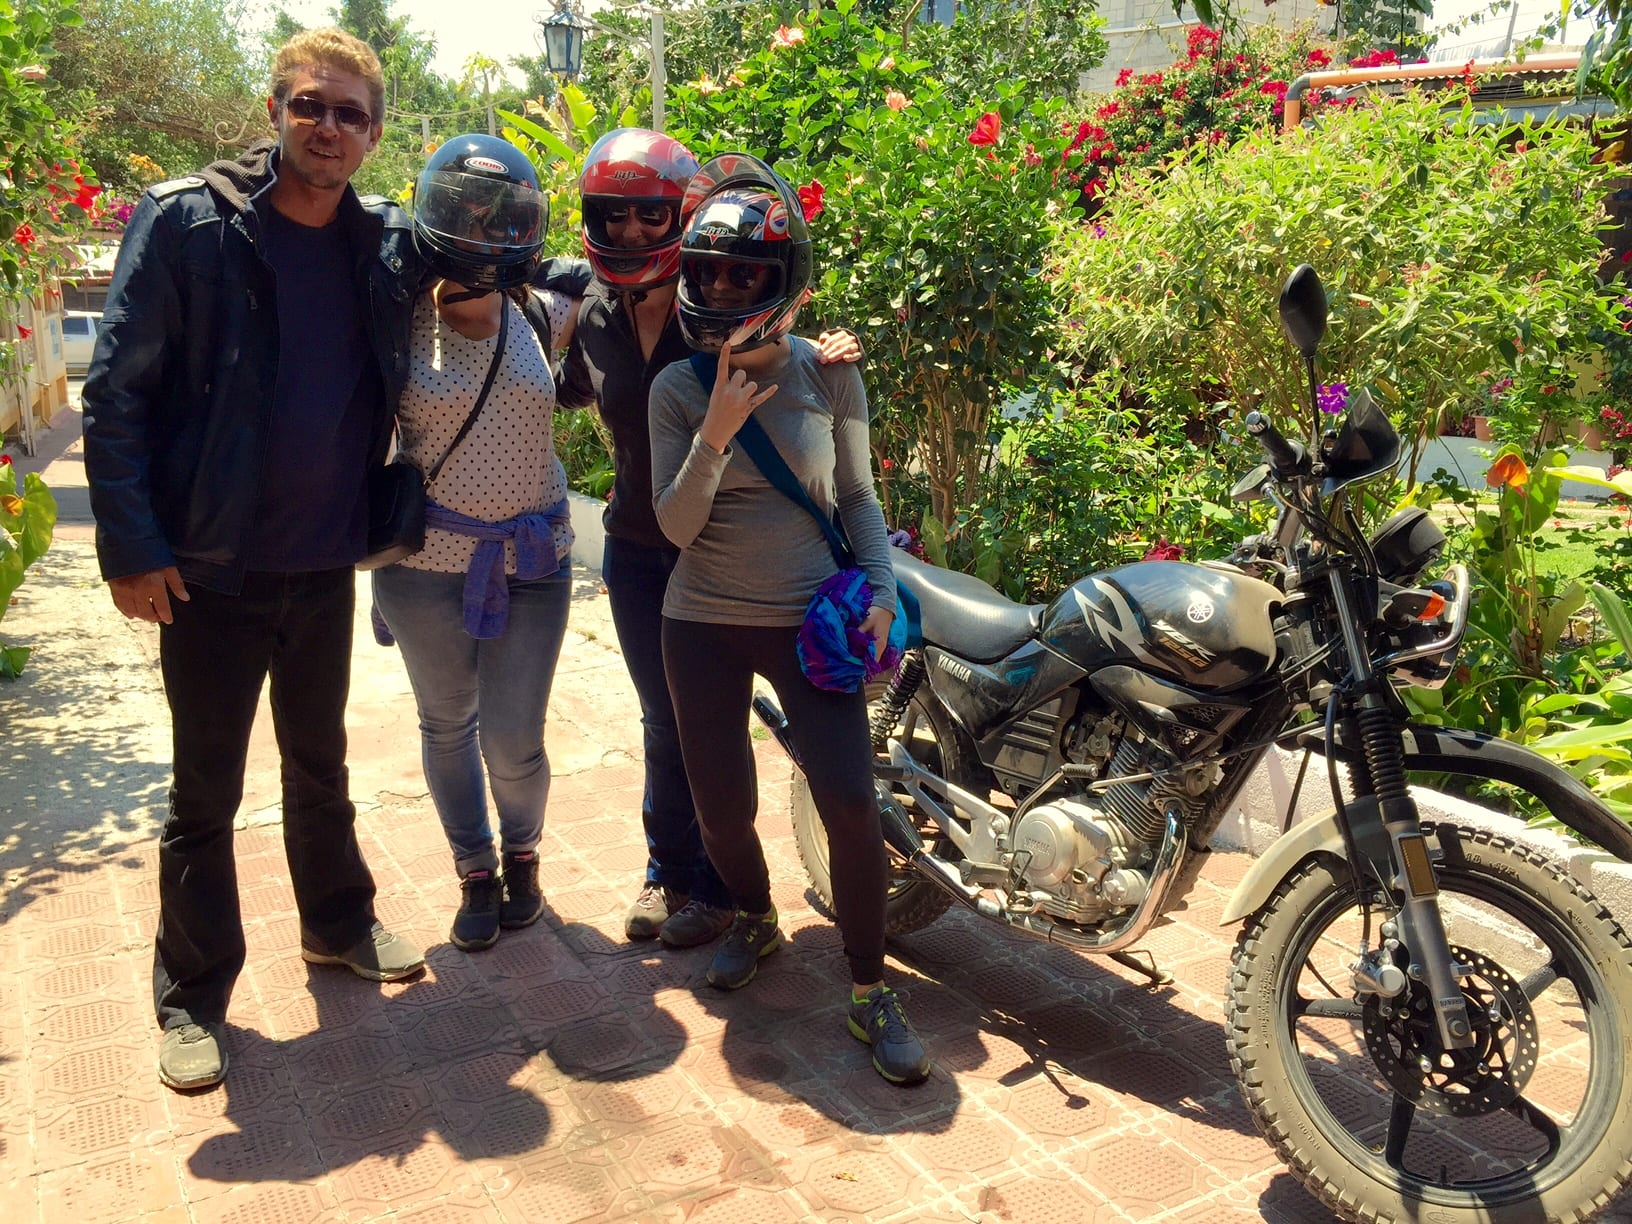 Motorcycle Tour with Leif